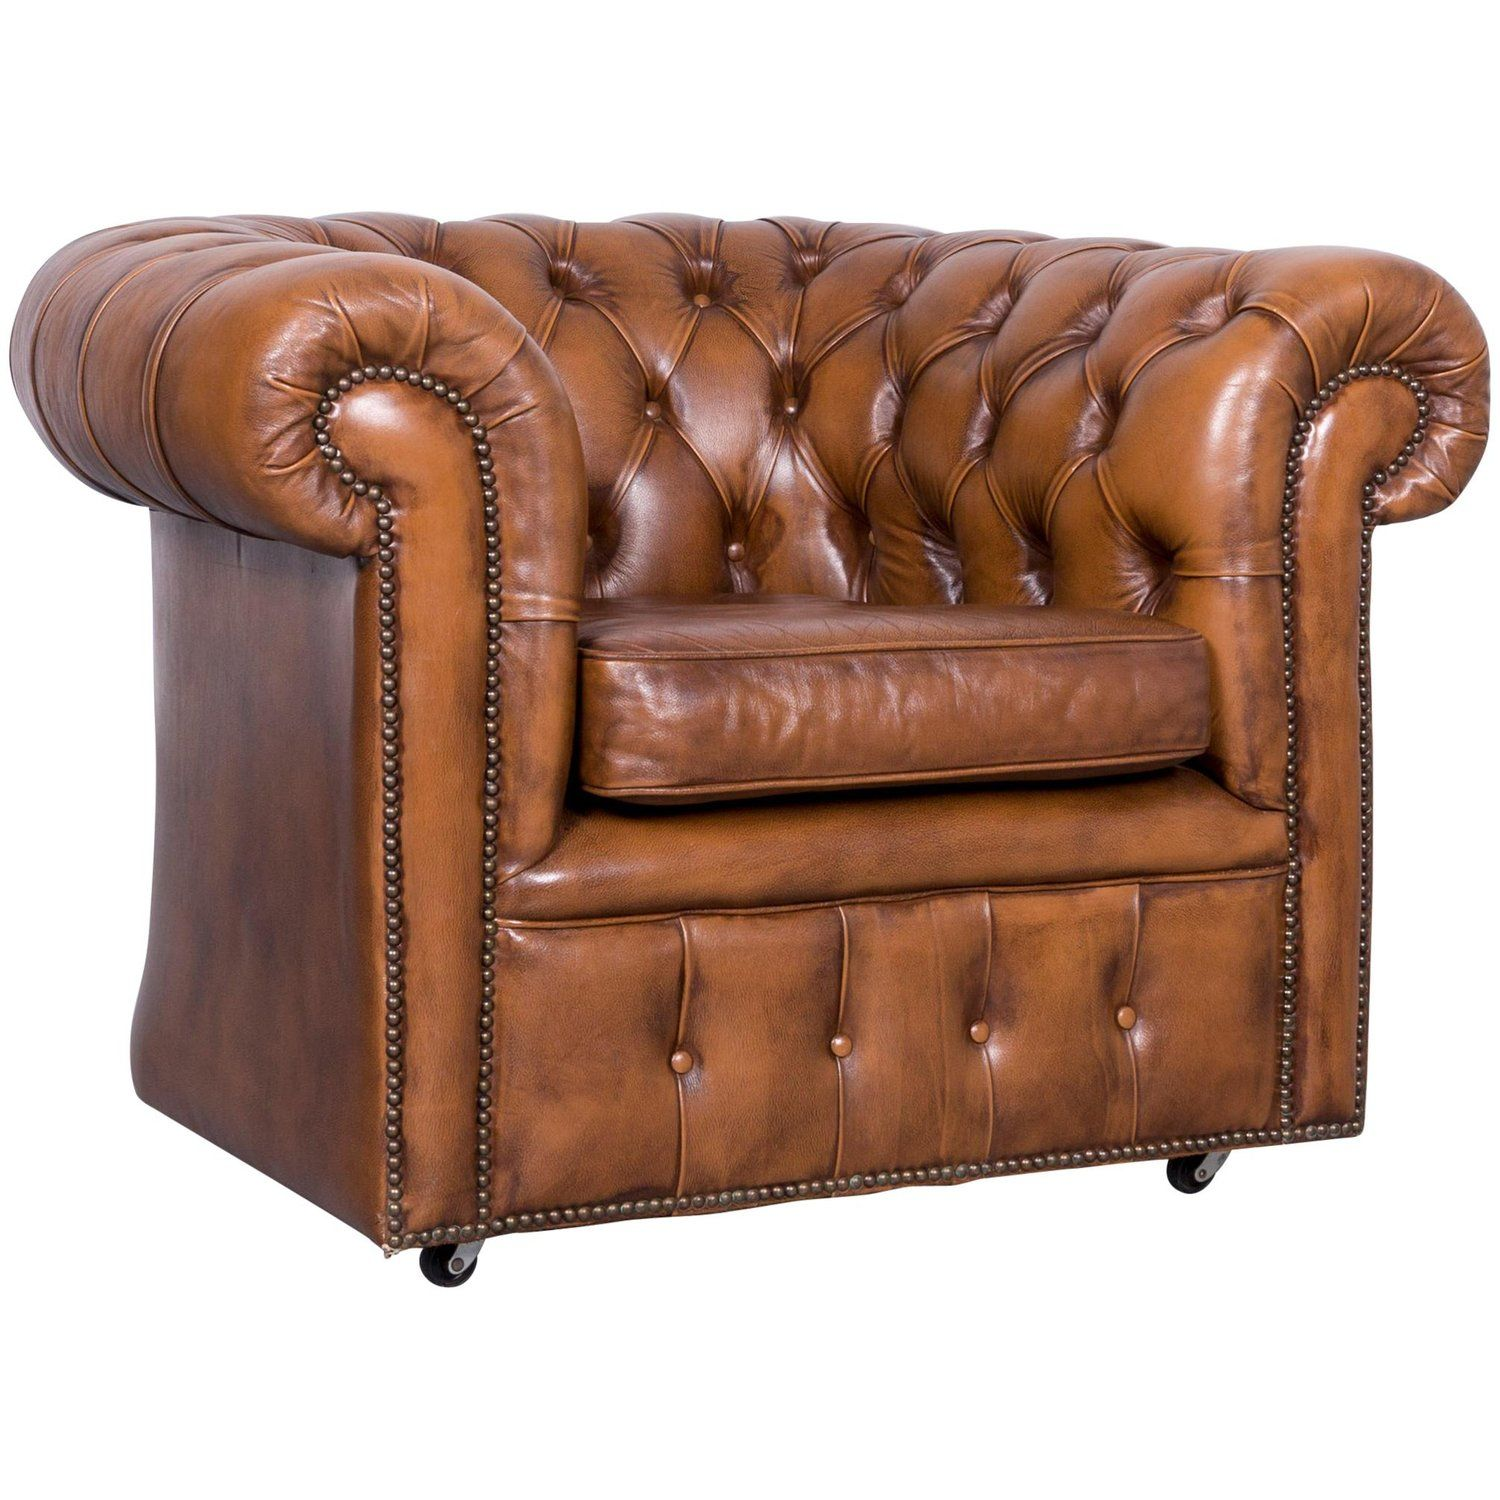 Vintage Brown Chesterfield Leather Armchair Buttoned Clubchair